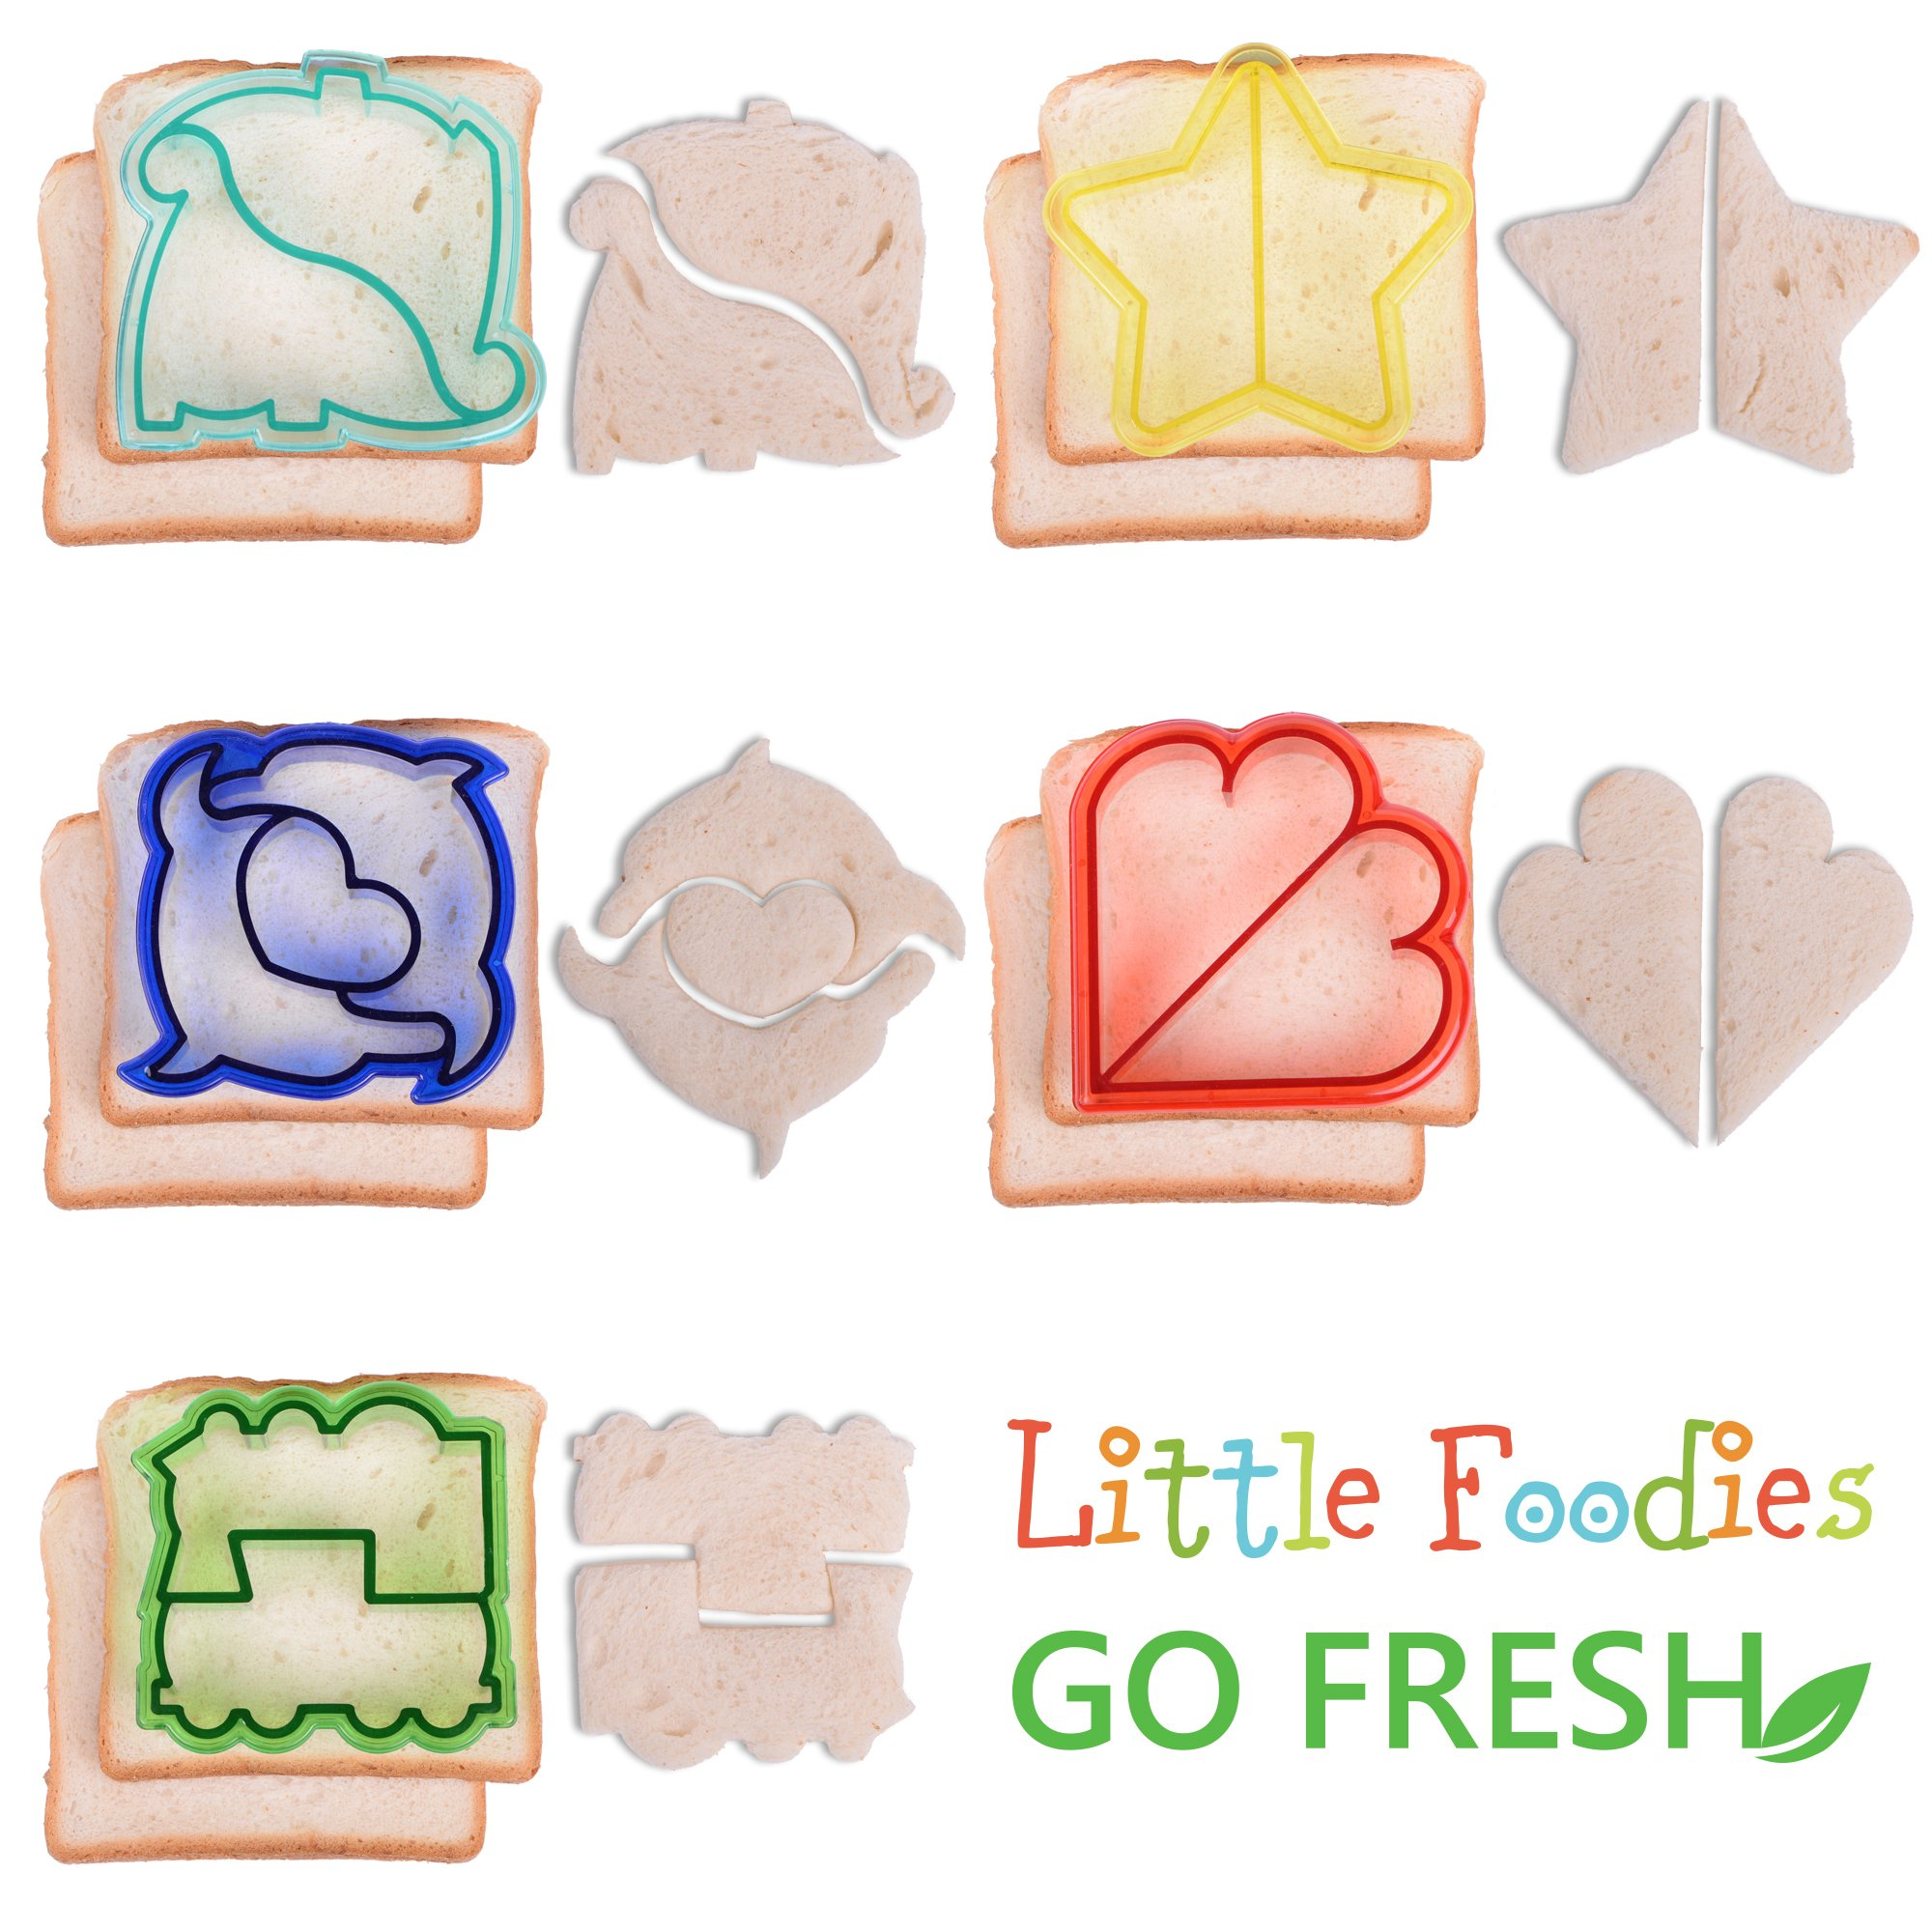 [20-Piece Set] Sandwich Cutters for Kids - 5 Sandwich Cutter Shapes, 5 Vegetable Cutters and FREE 10 Bento Decorations by GO FRESH (Image #2)